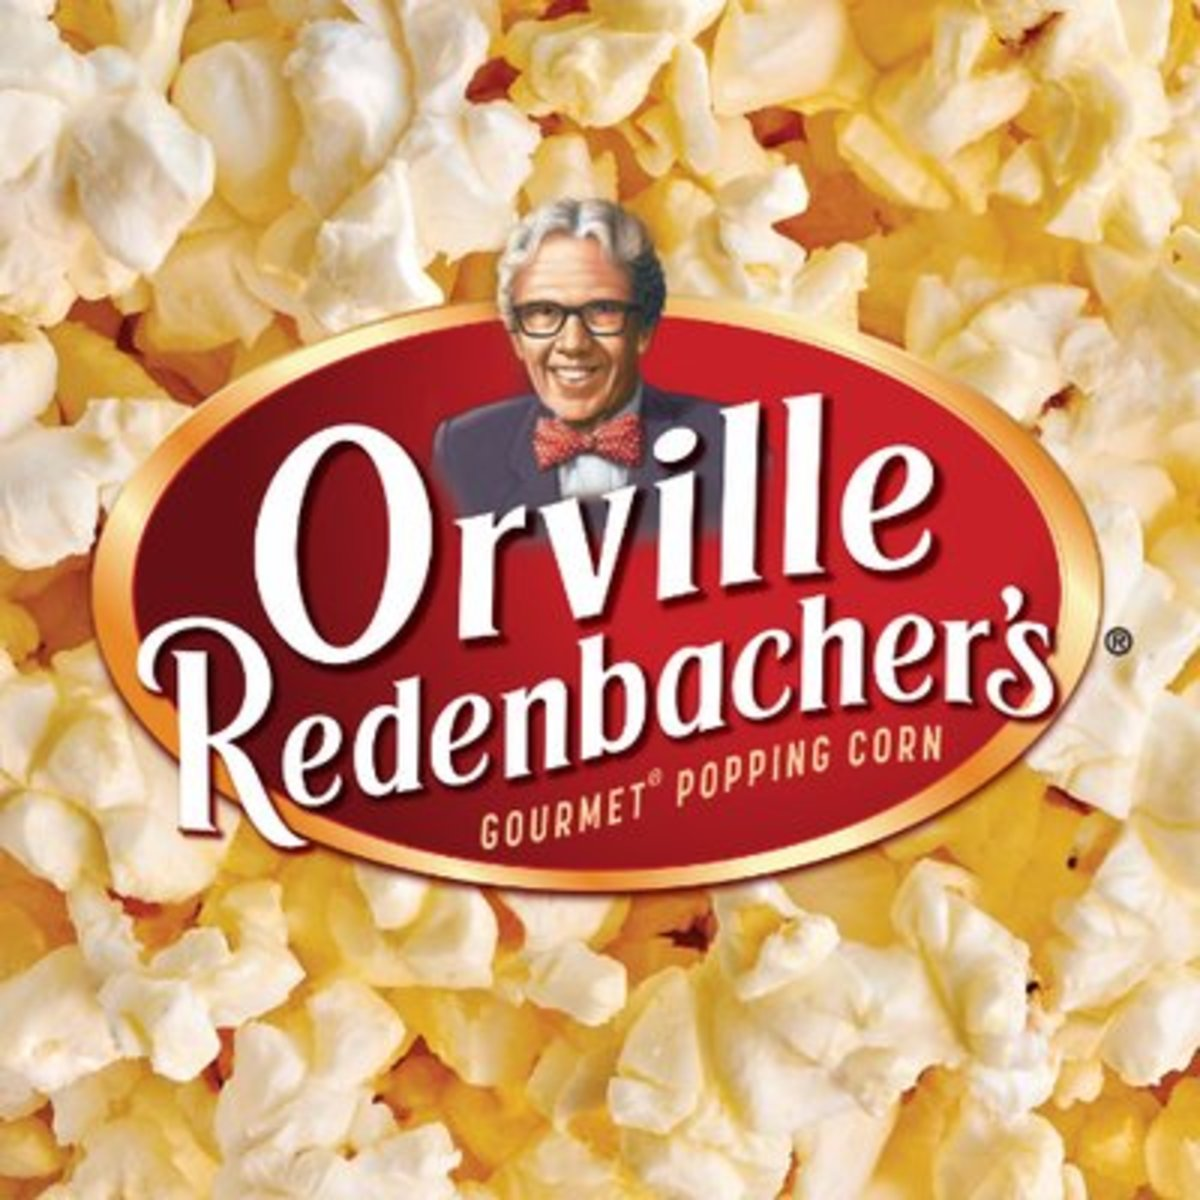 In 1970, Orville Redenbacher introduced his gourmet popping corn.